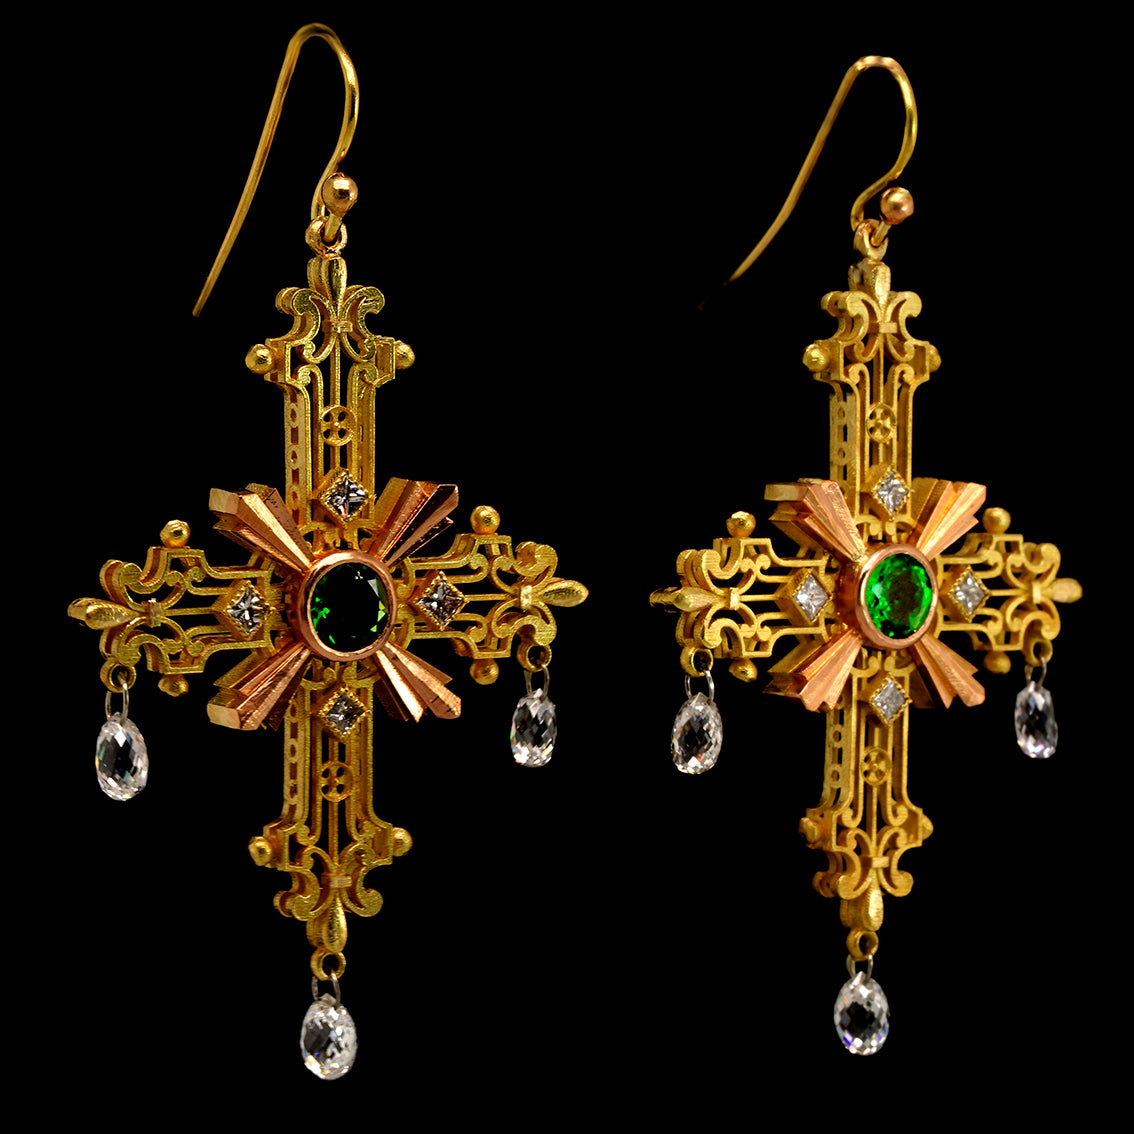 CRUX GEMMATA EARRINGS